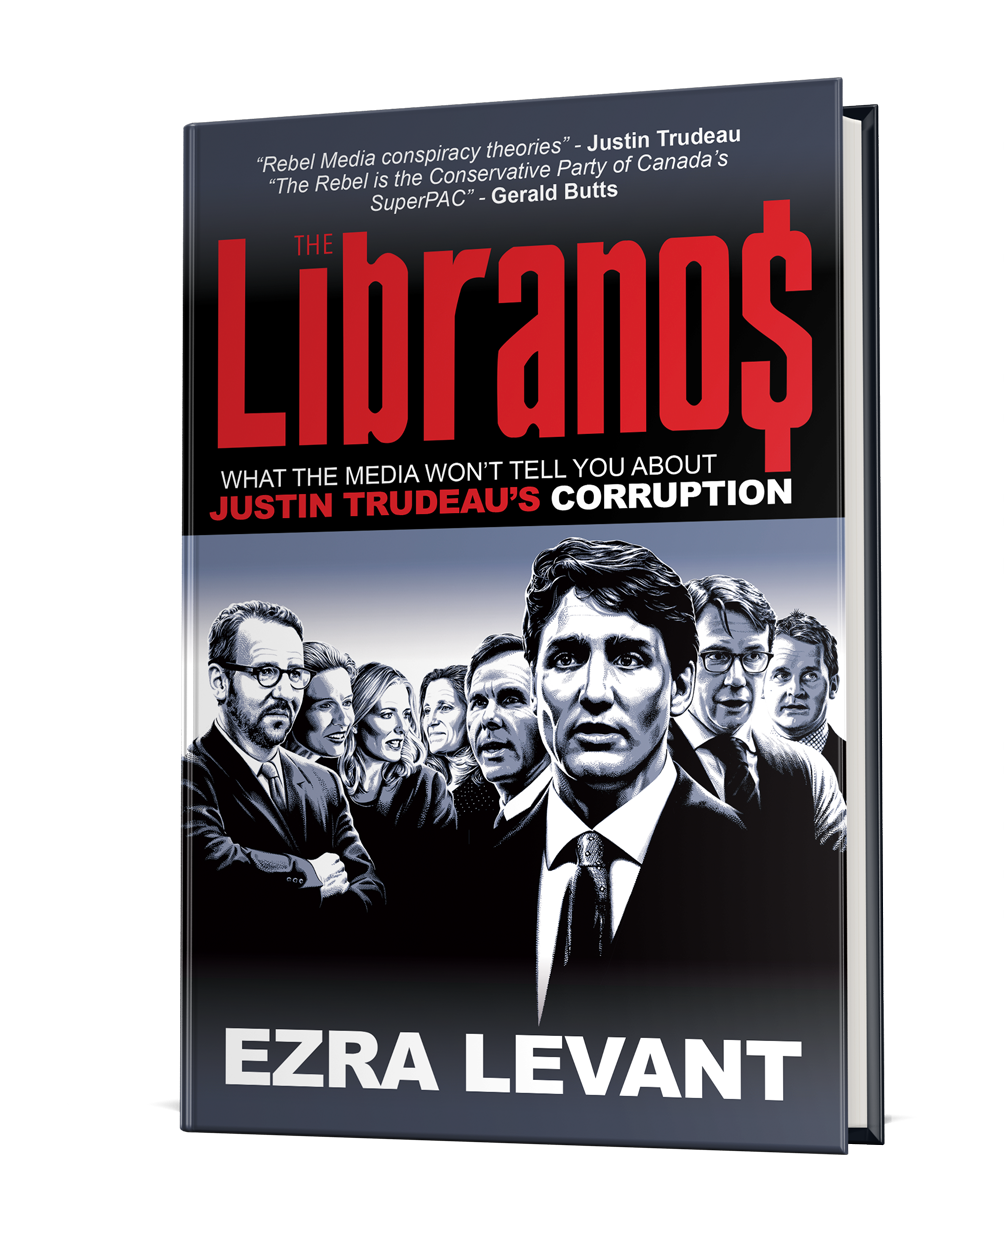 Buy The Libranos Book on Amazon